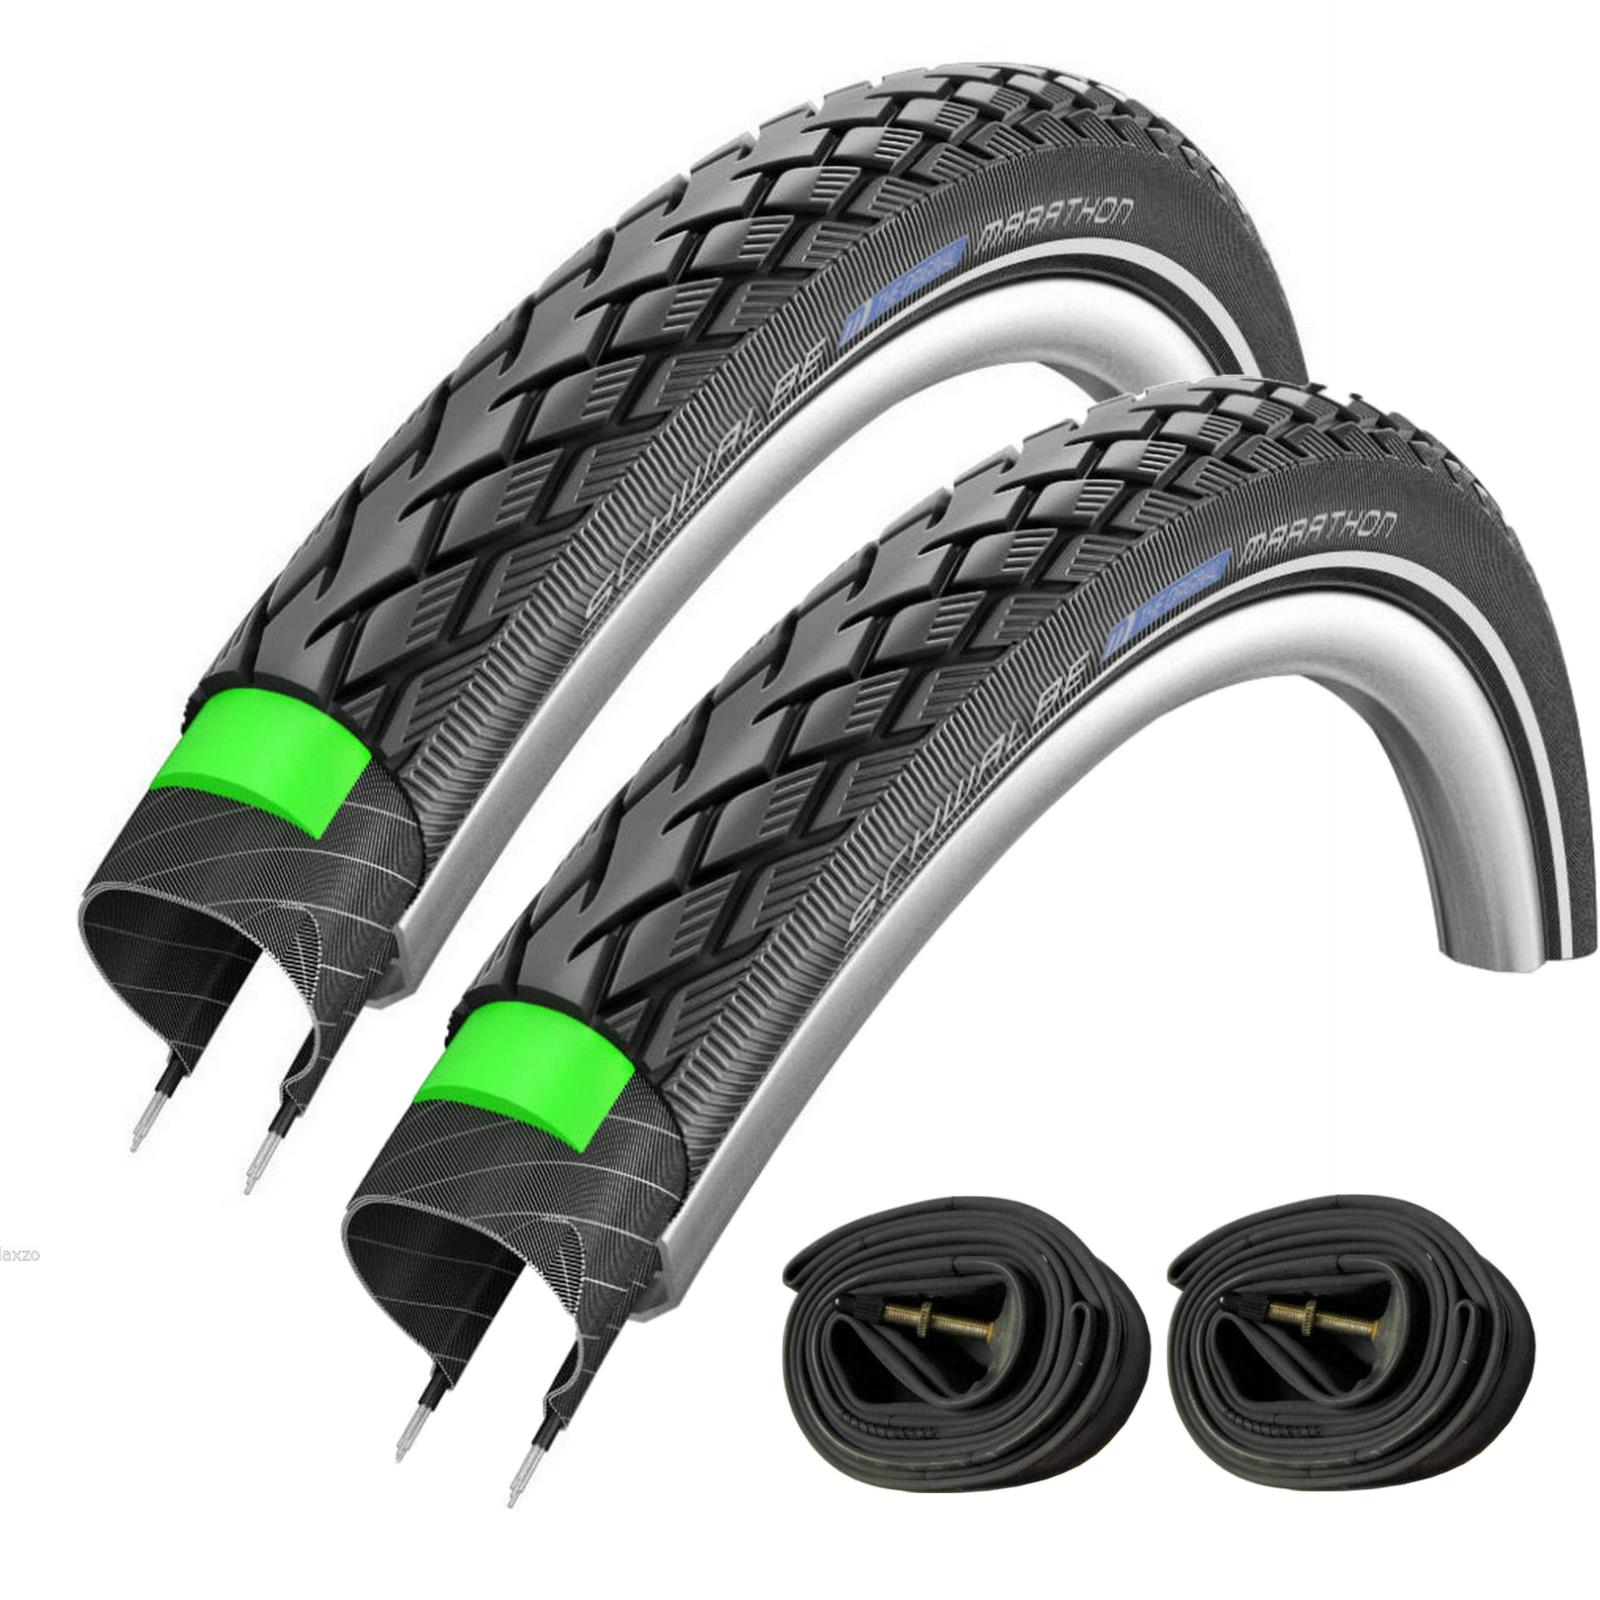 Black//Reflex 26 x 2.00 Schwalbe Marathon Performance Wired Tyre